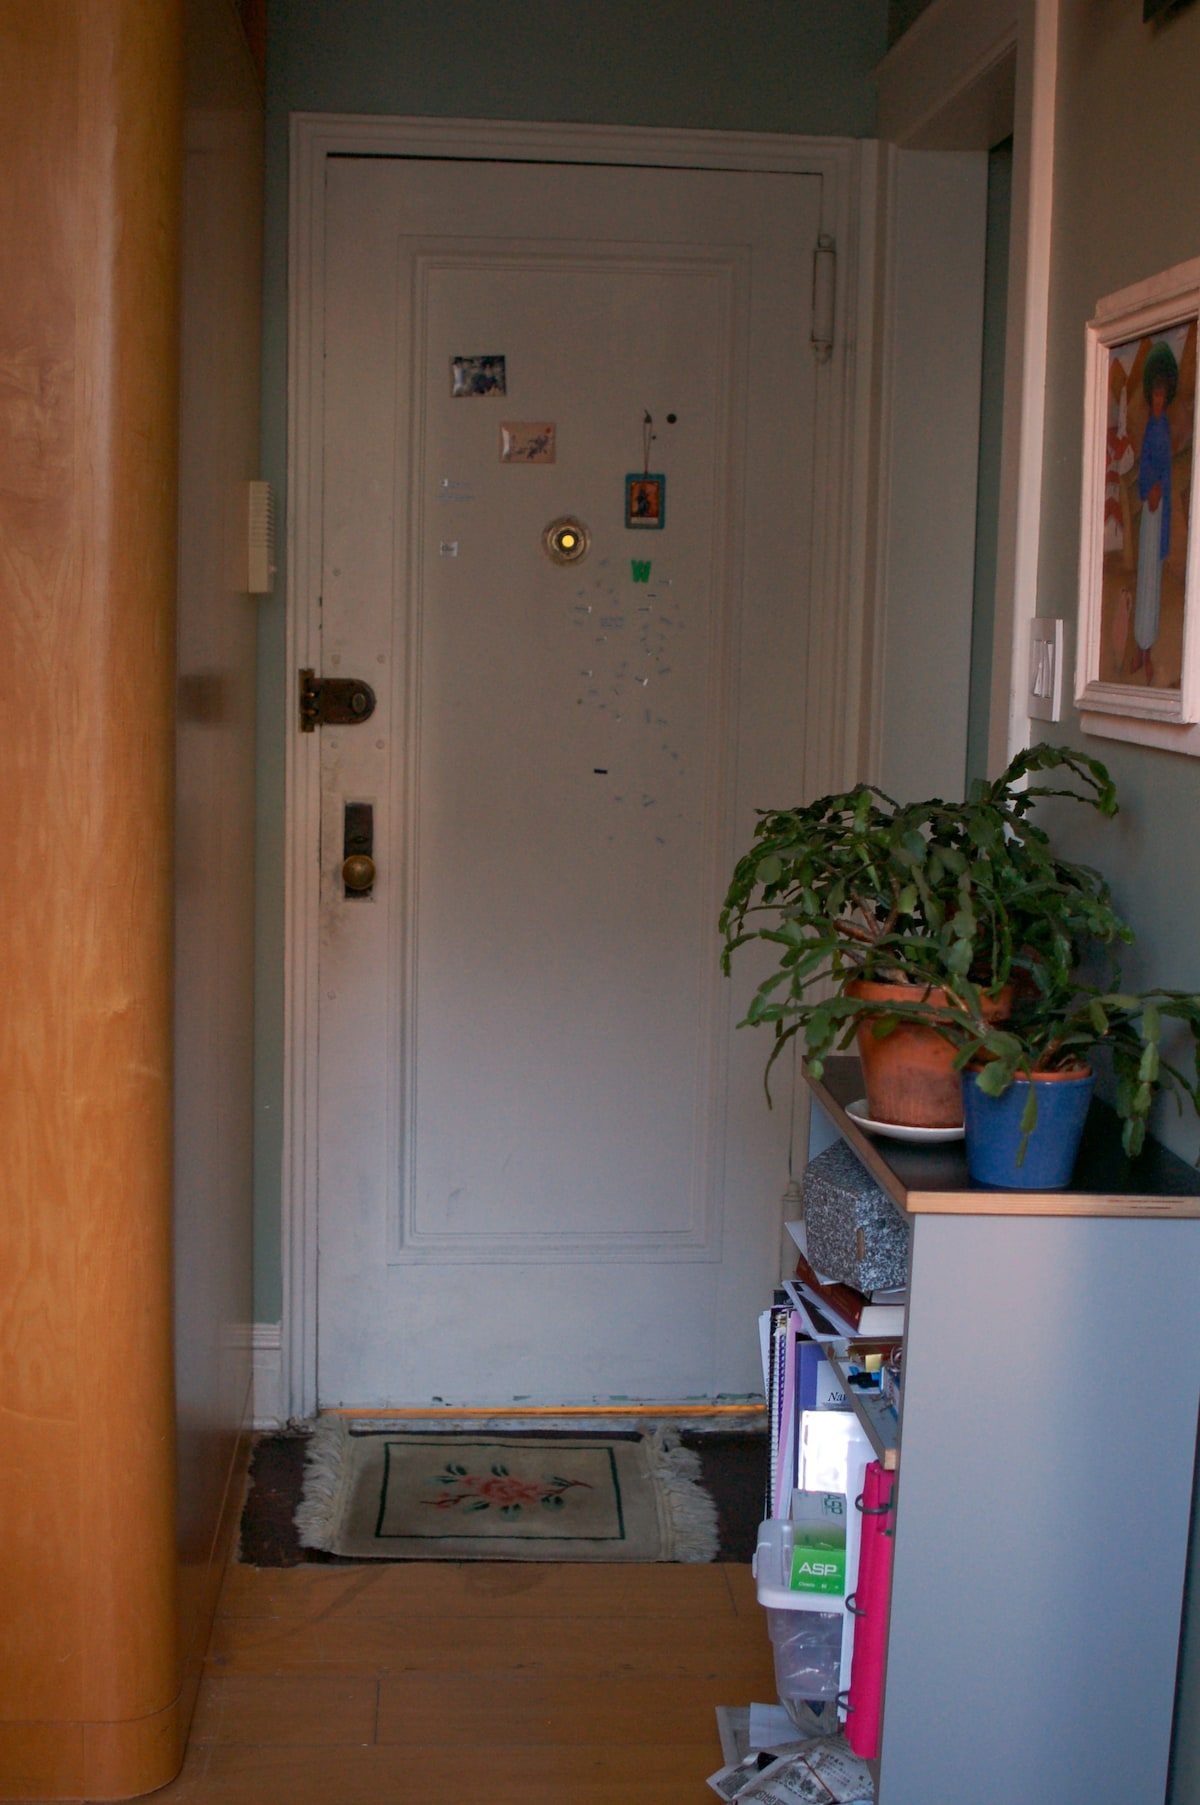 The private entrance/exit. To the right, hallway to main apartment and kitchen.